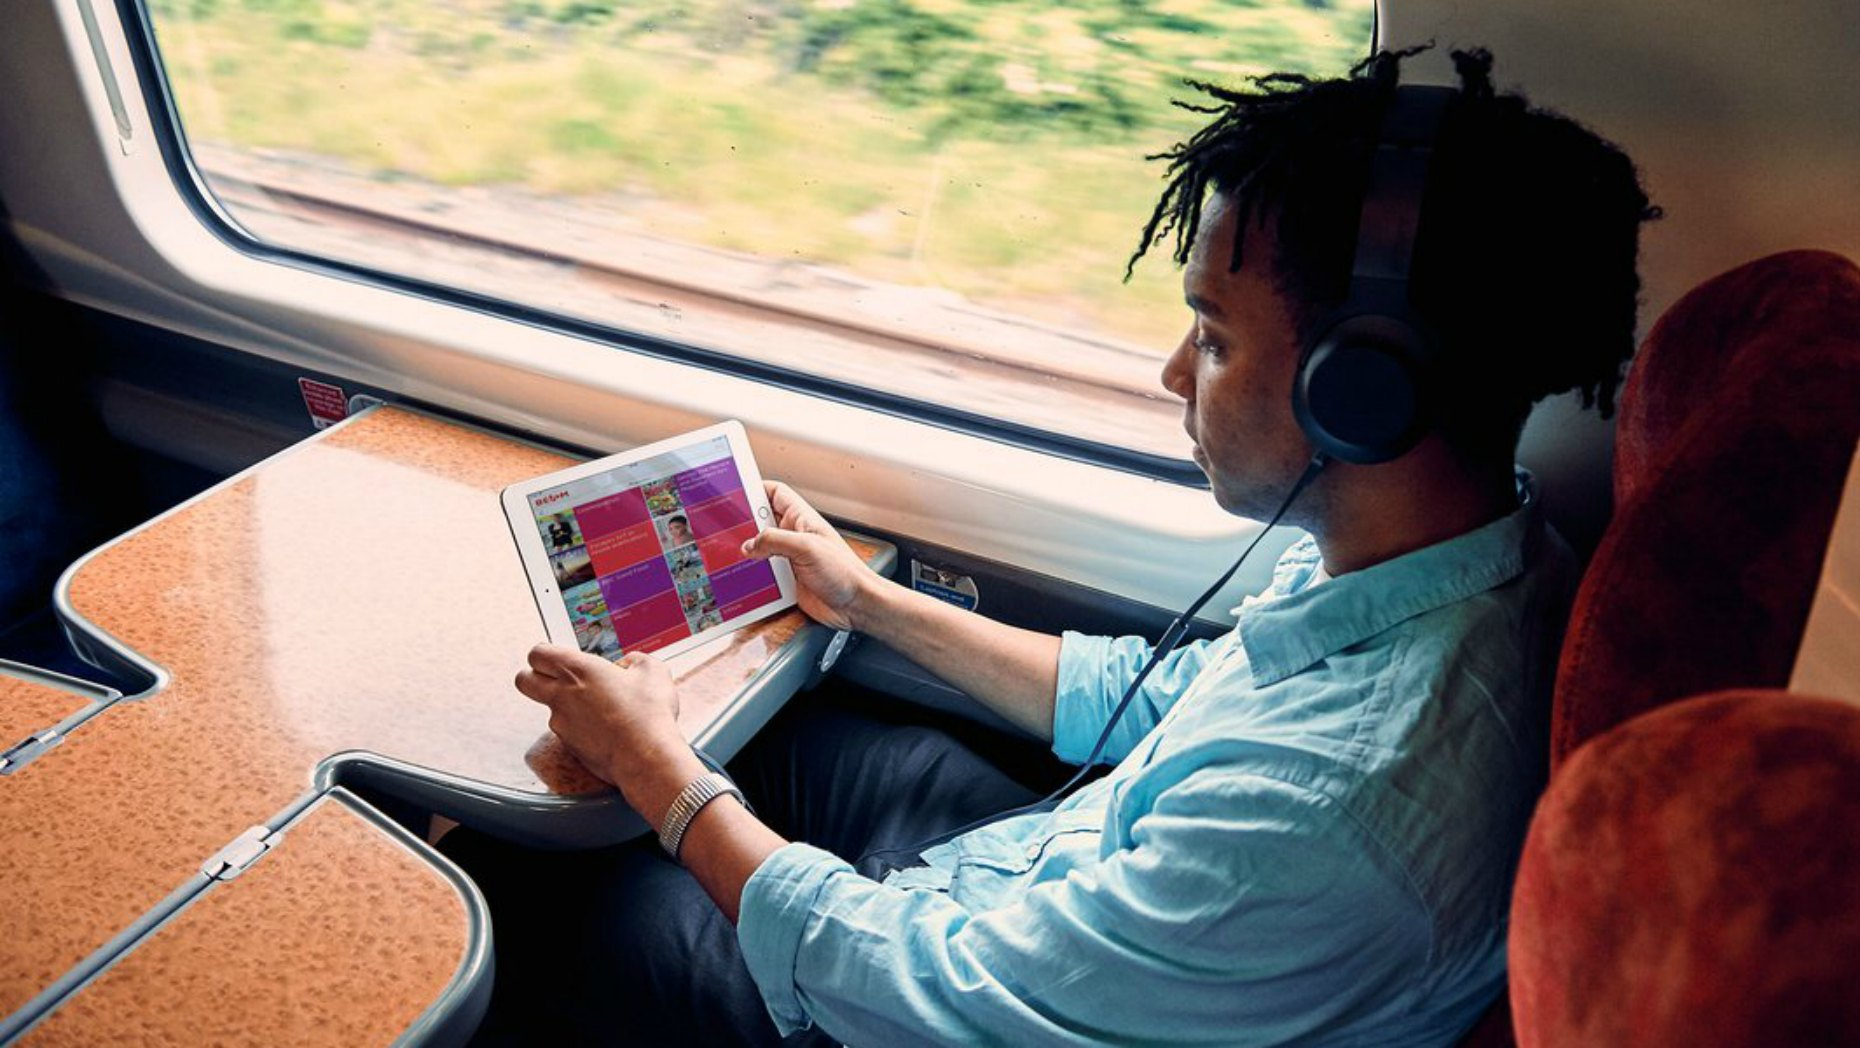 Train users will also benefit from the new Beam app Photo: Virgin Trains/ Press Association